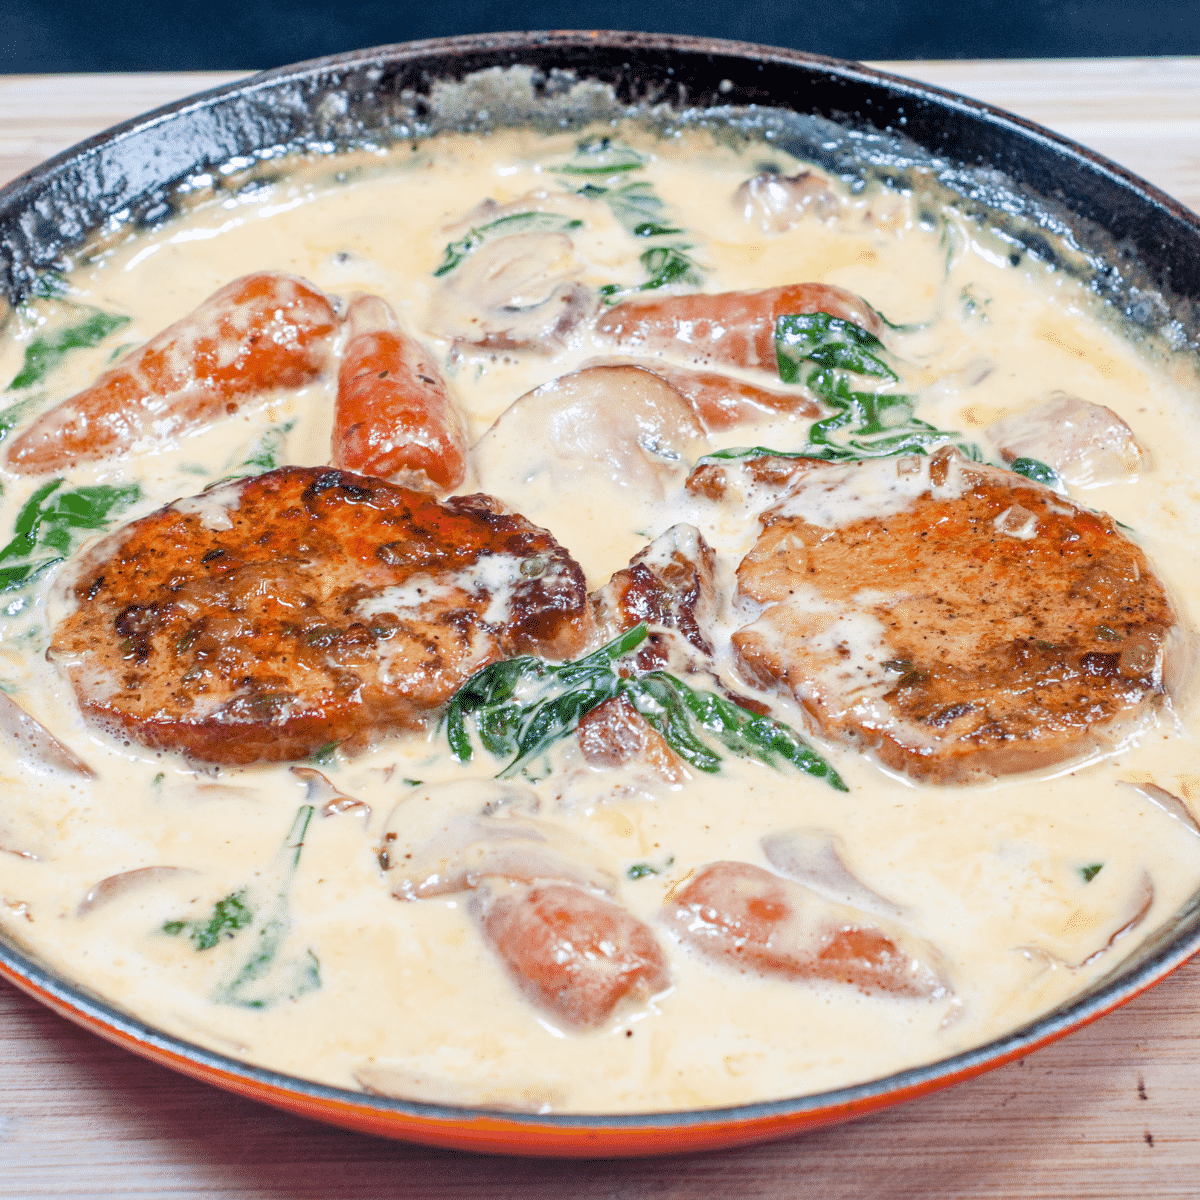 Pork loin in brandy and cream | https://theyumyumclub.com/2019/05/01/pork-loin-brandy-cream/